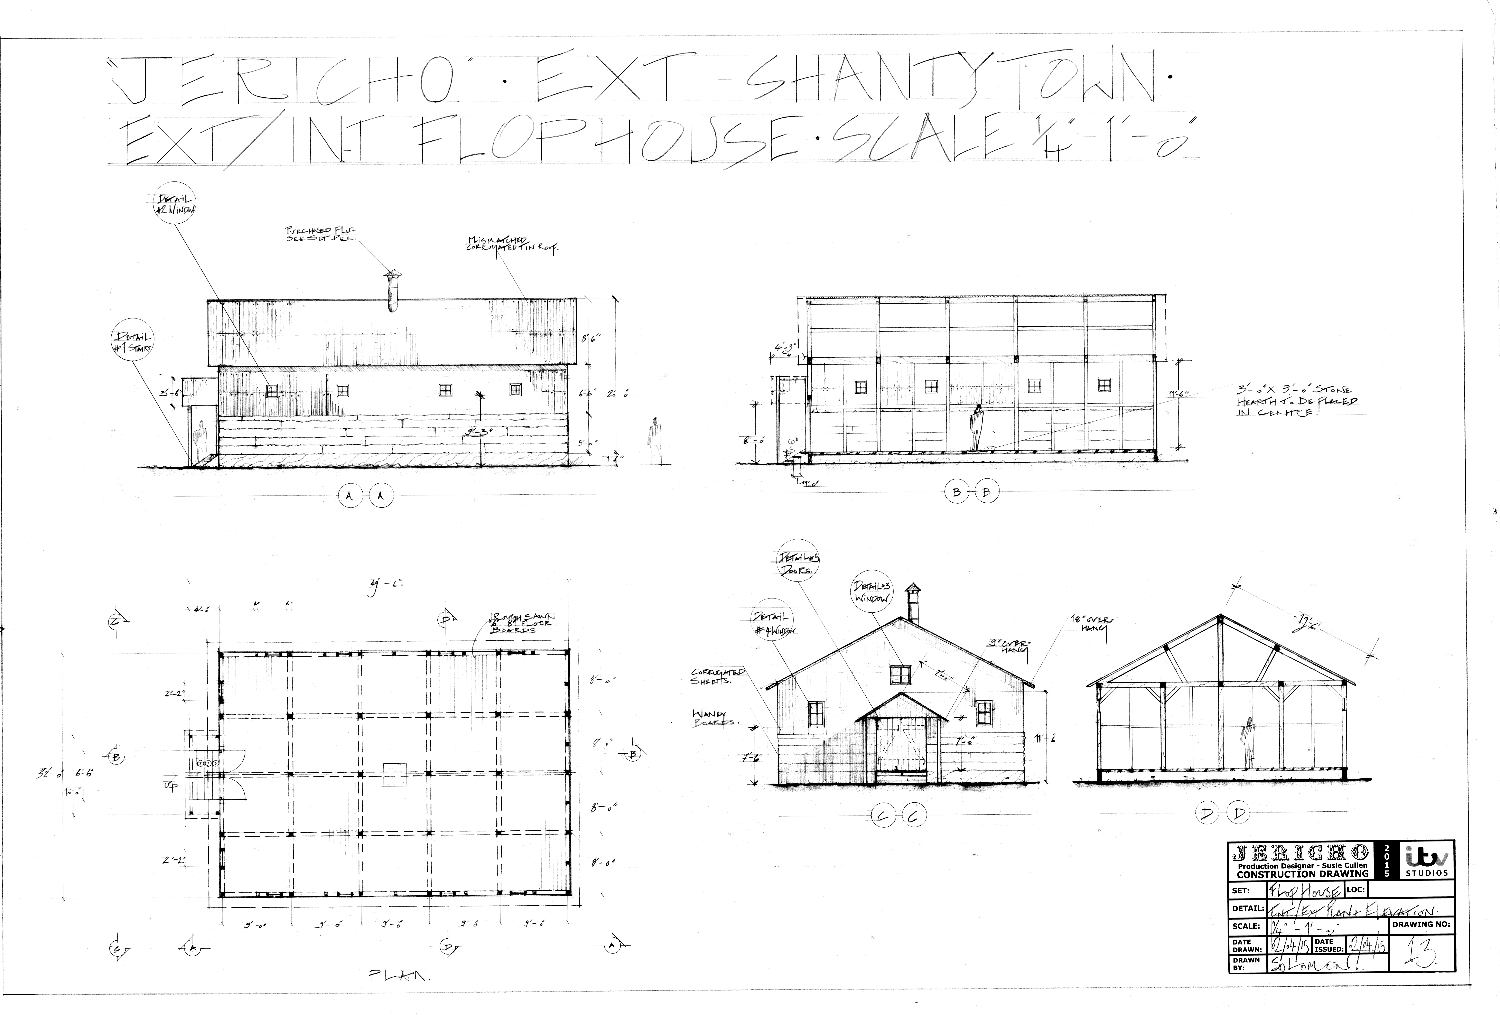 Drawing 15 - Ext_Int. Flop House - Plan and Elevations_edited